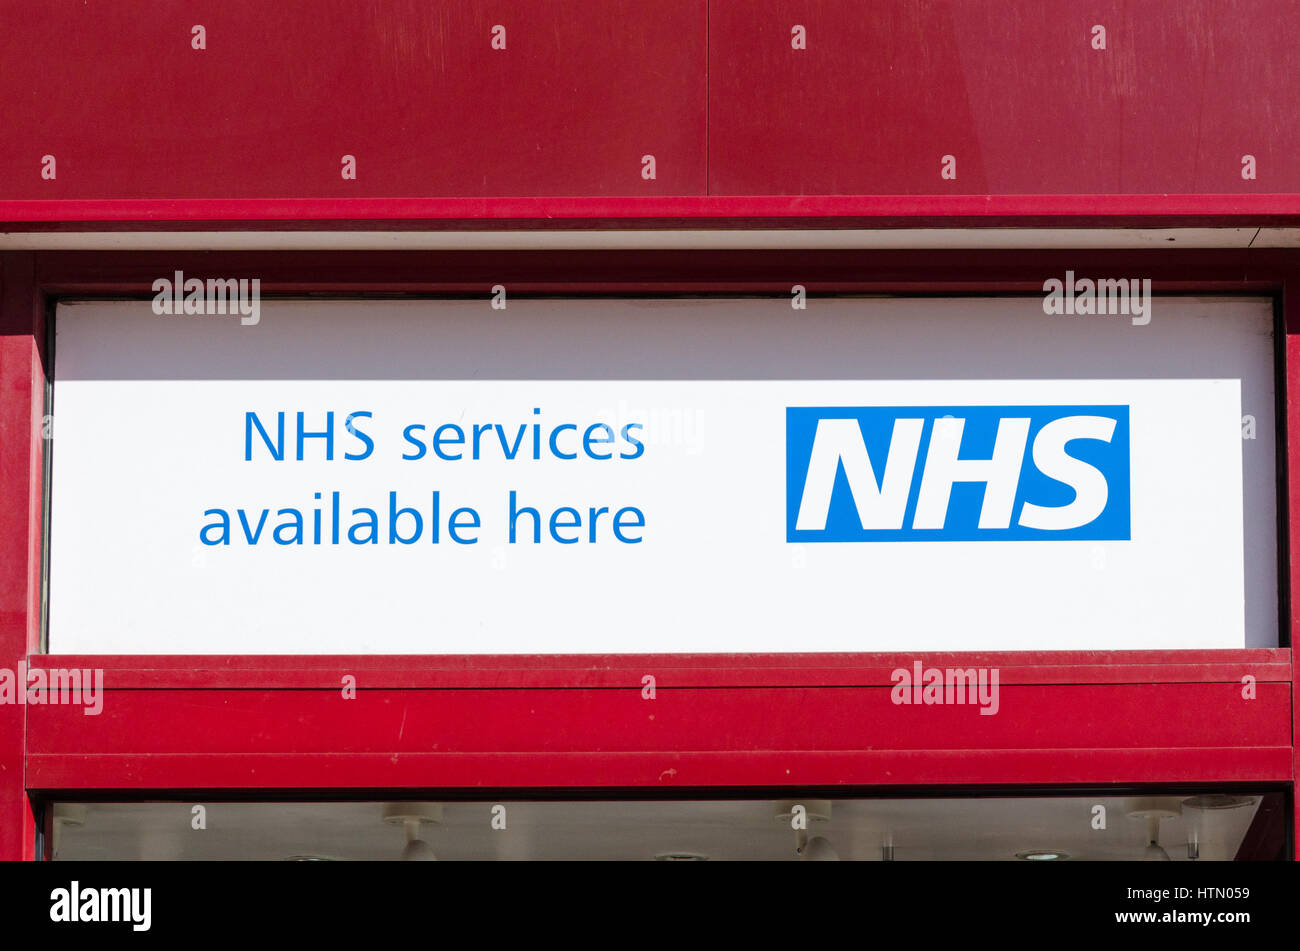 Sign at pharmacy advertising NHS services available - Stock Image